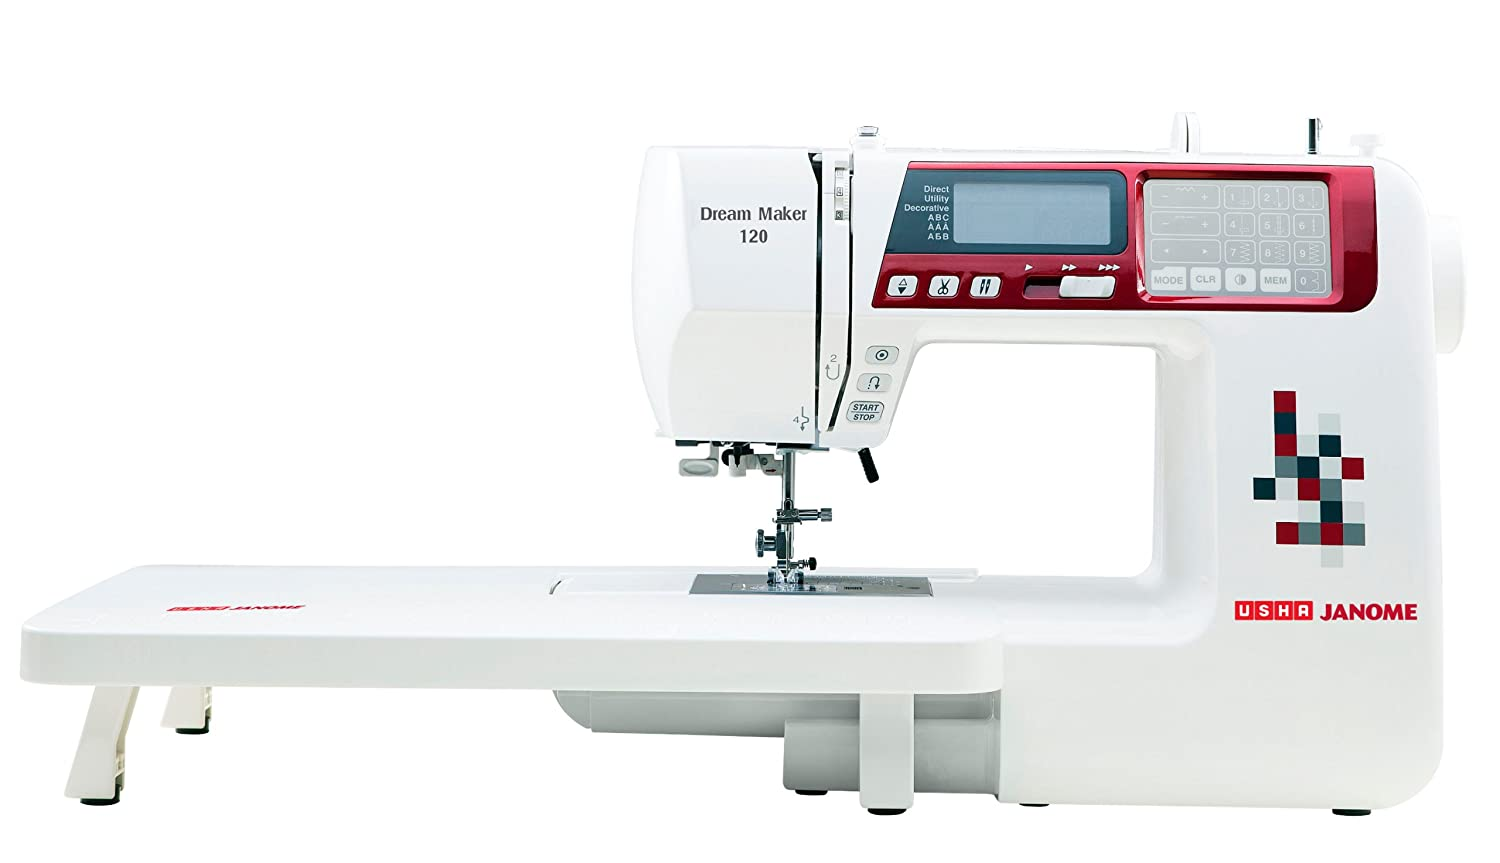 Usha Janome Dream Maker 120 35-Watt Computerized Sewing Machine